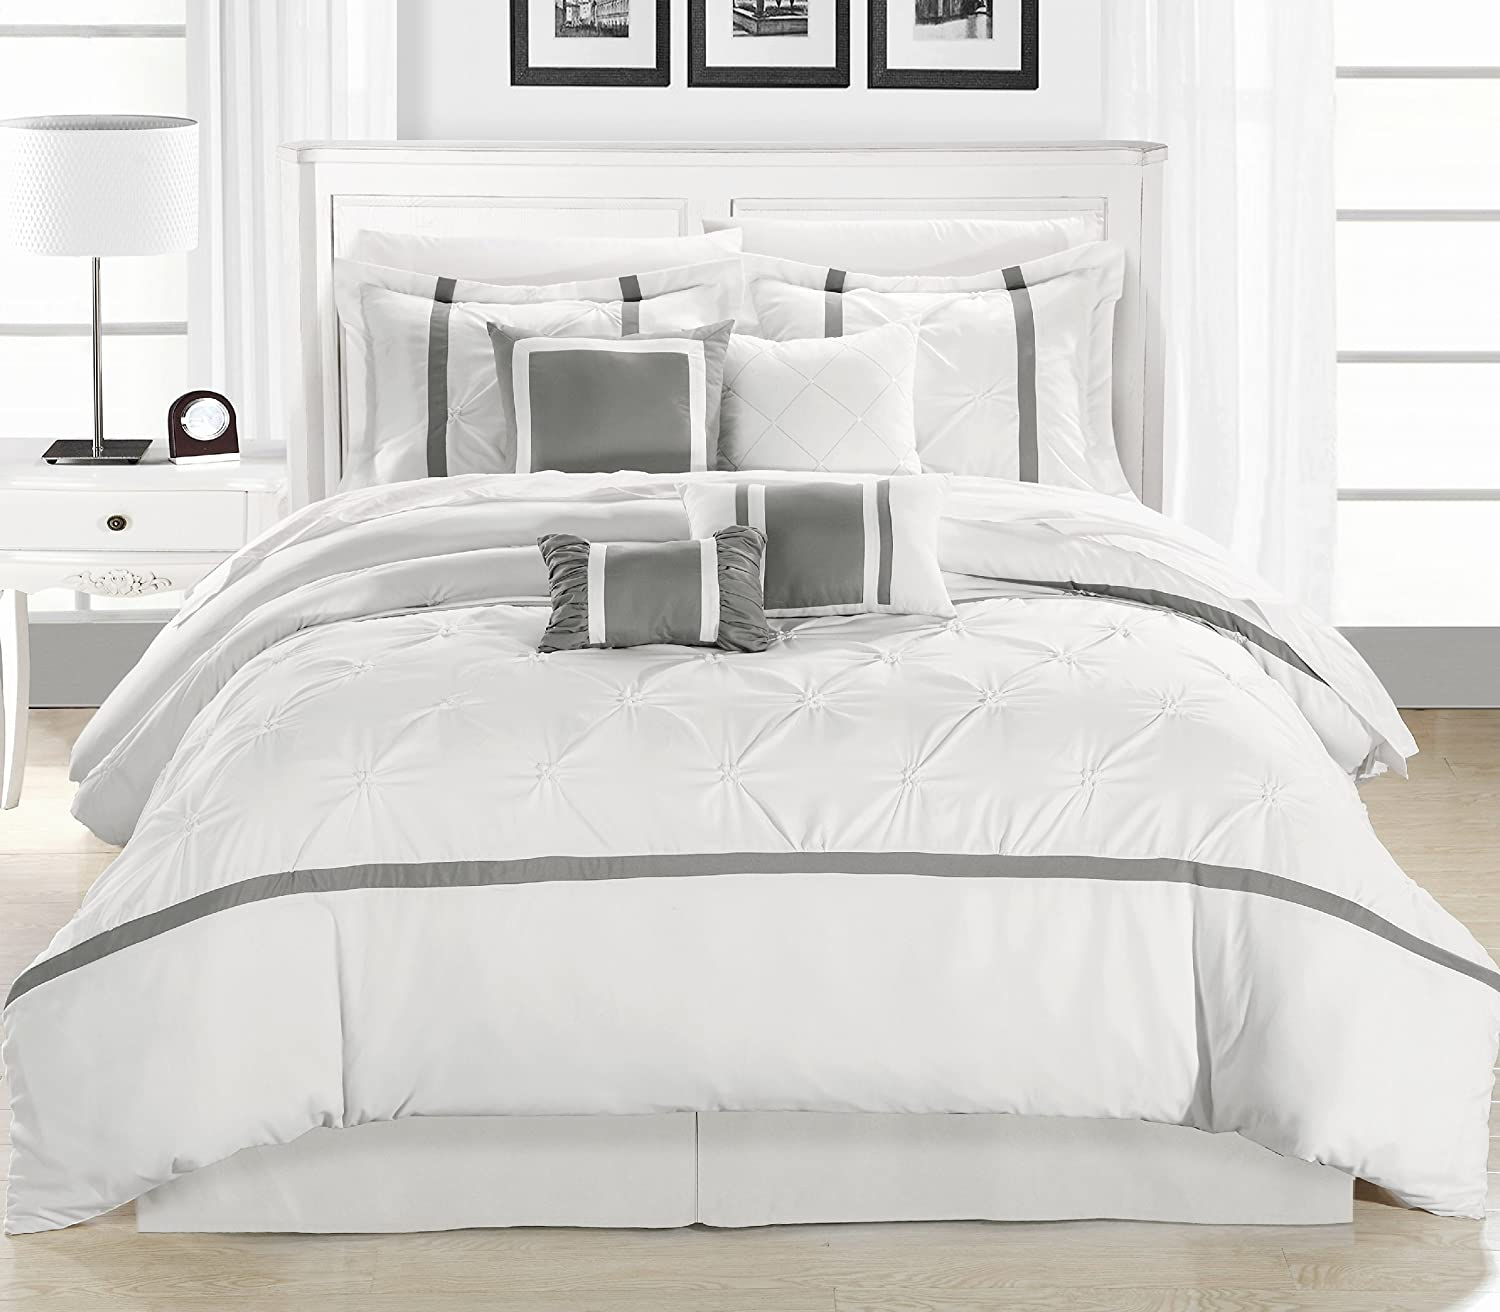 Merveilleux Amazon.com: Chic Home Vermont 8 Piece Comforter Set, Queen, White/Silver:  Home U0026 Kitchen